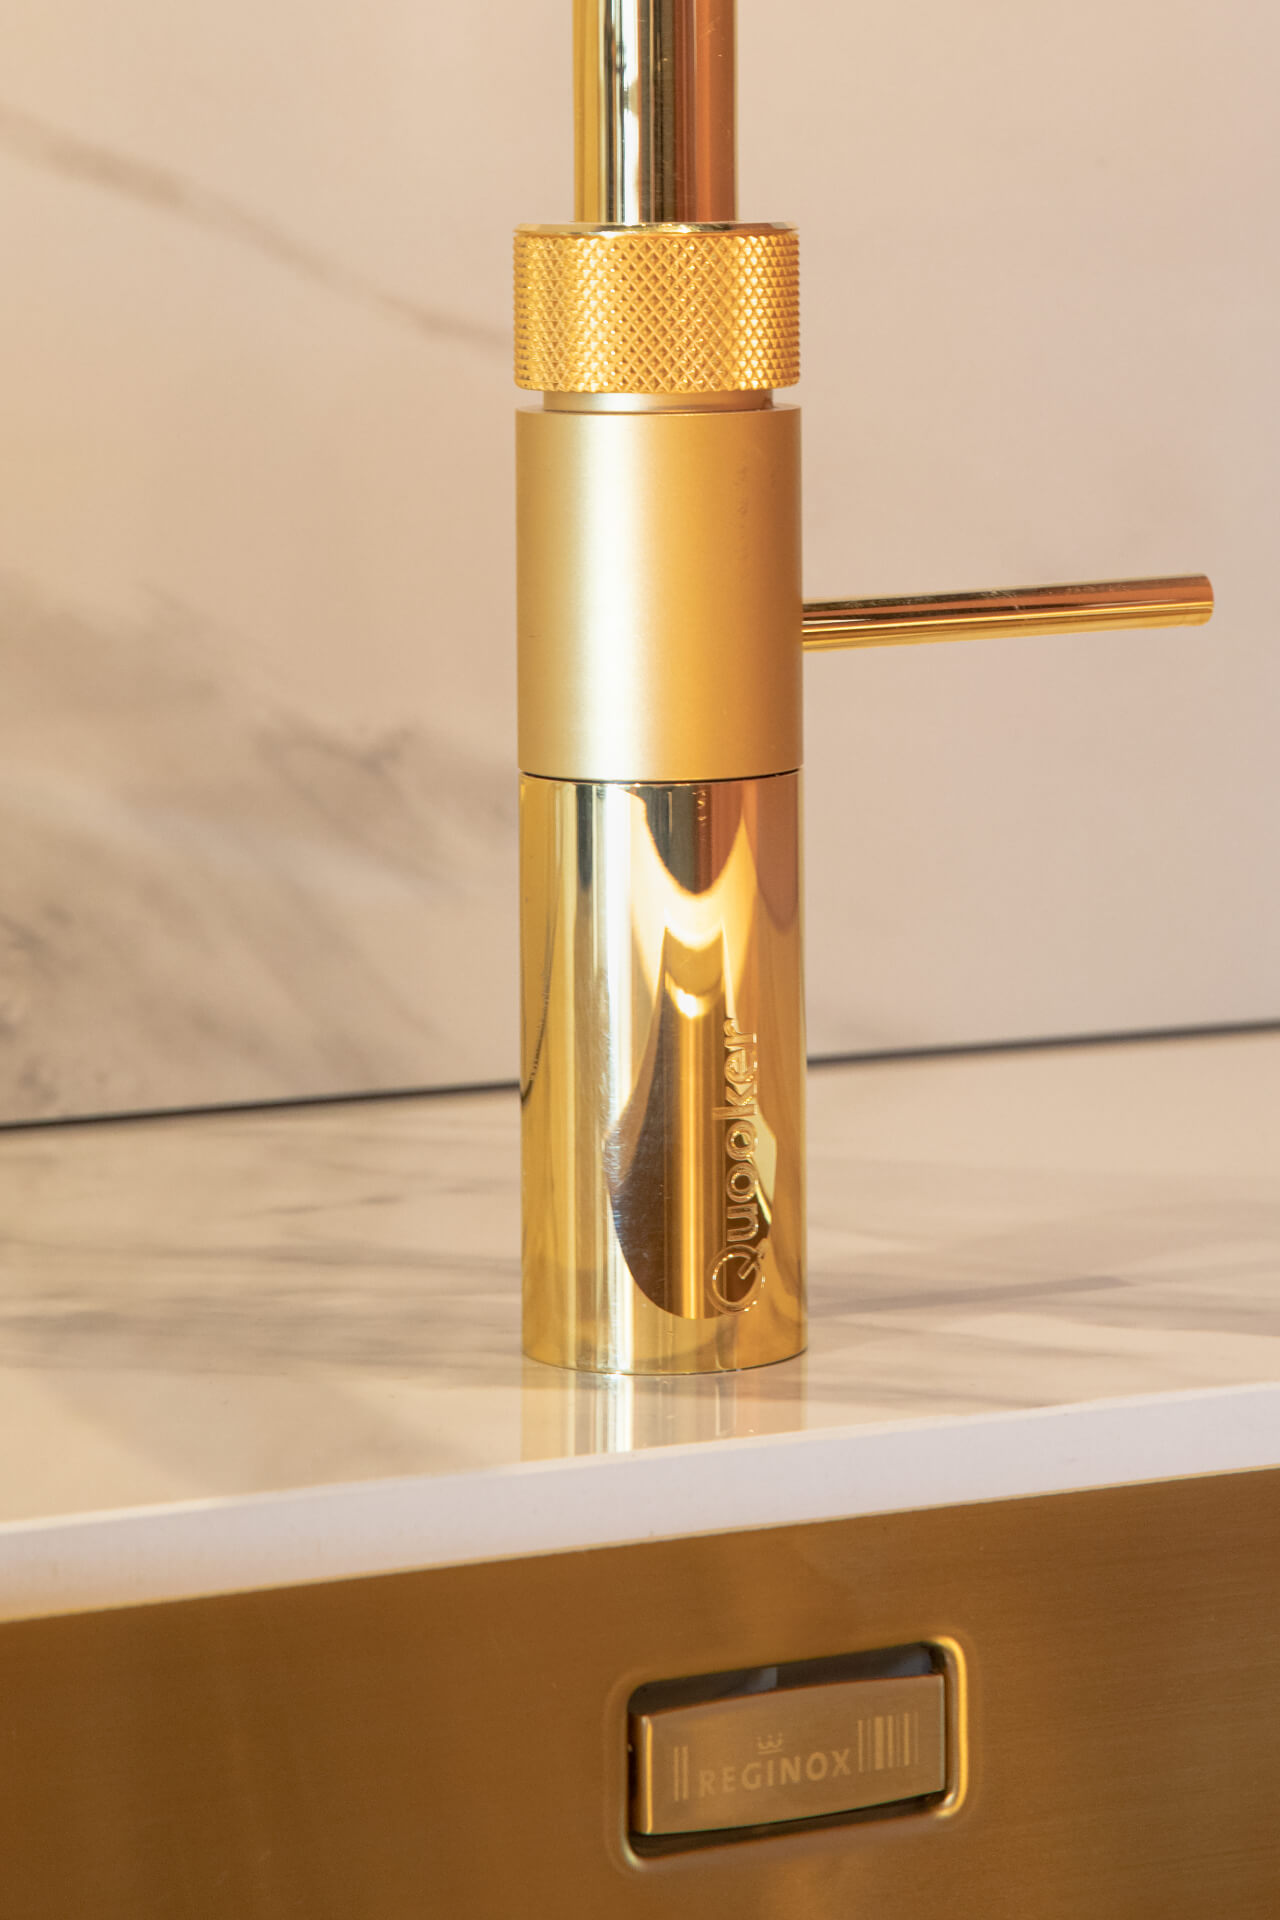 Gouden quooker limited edition